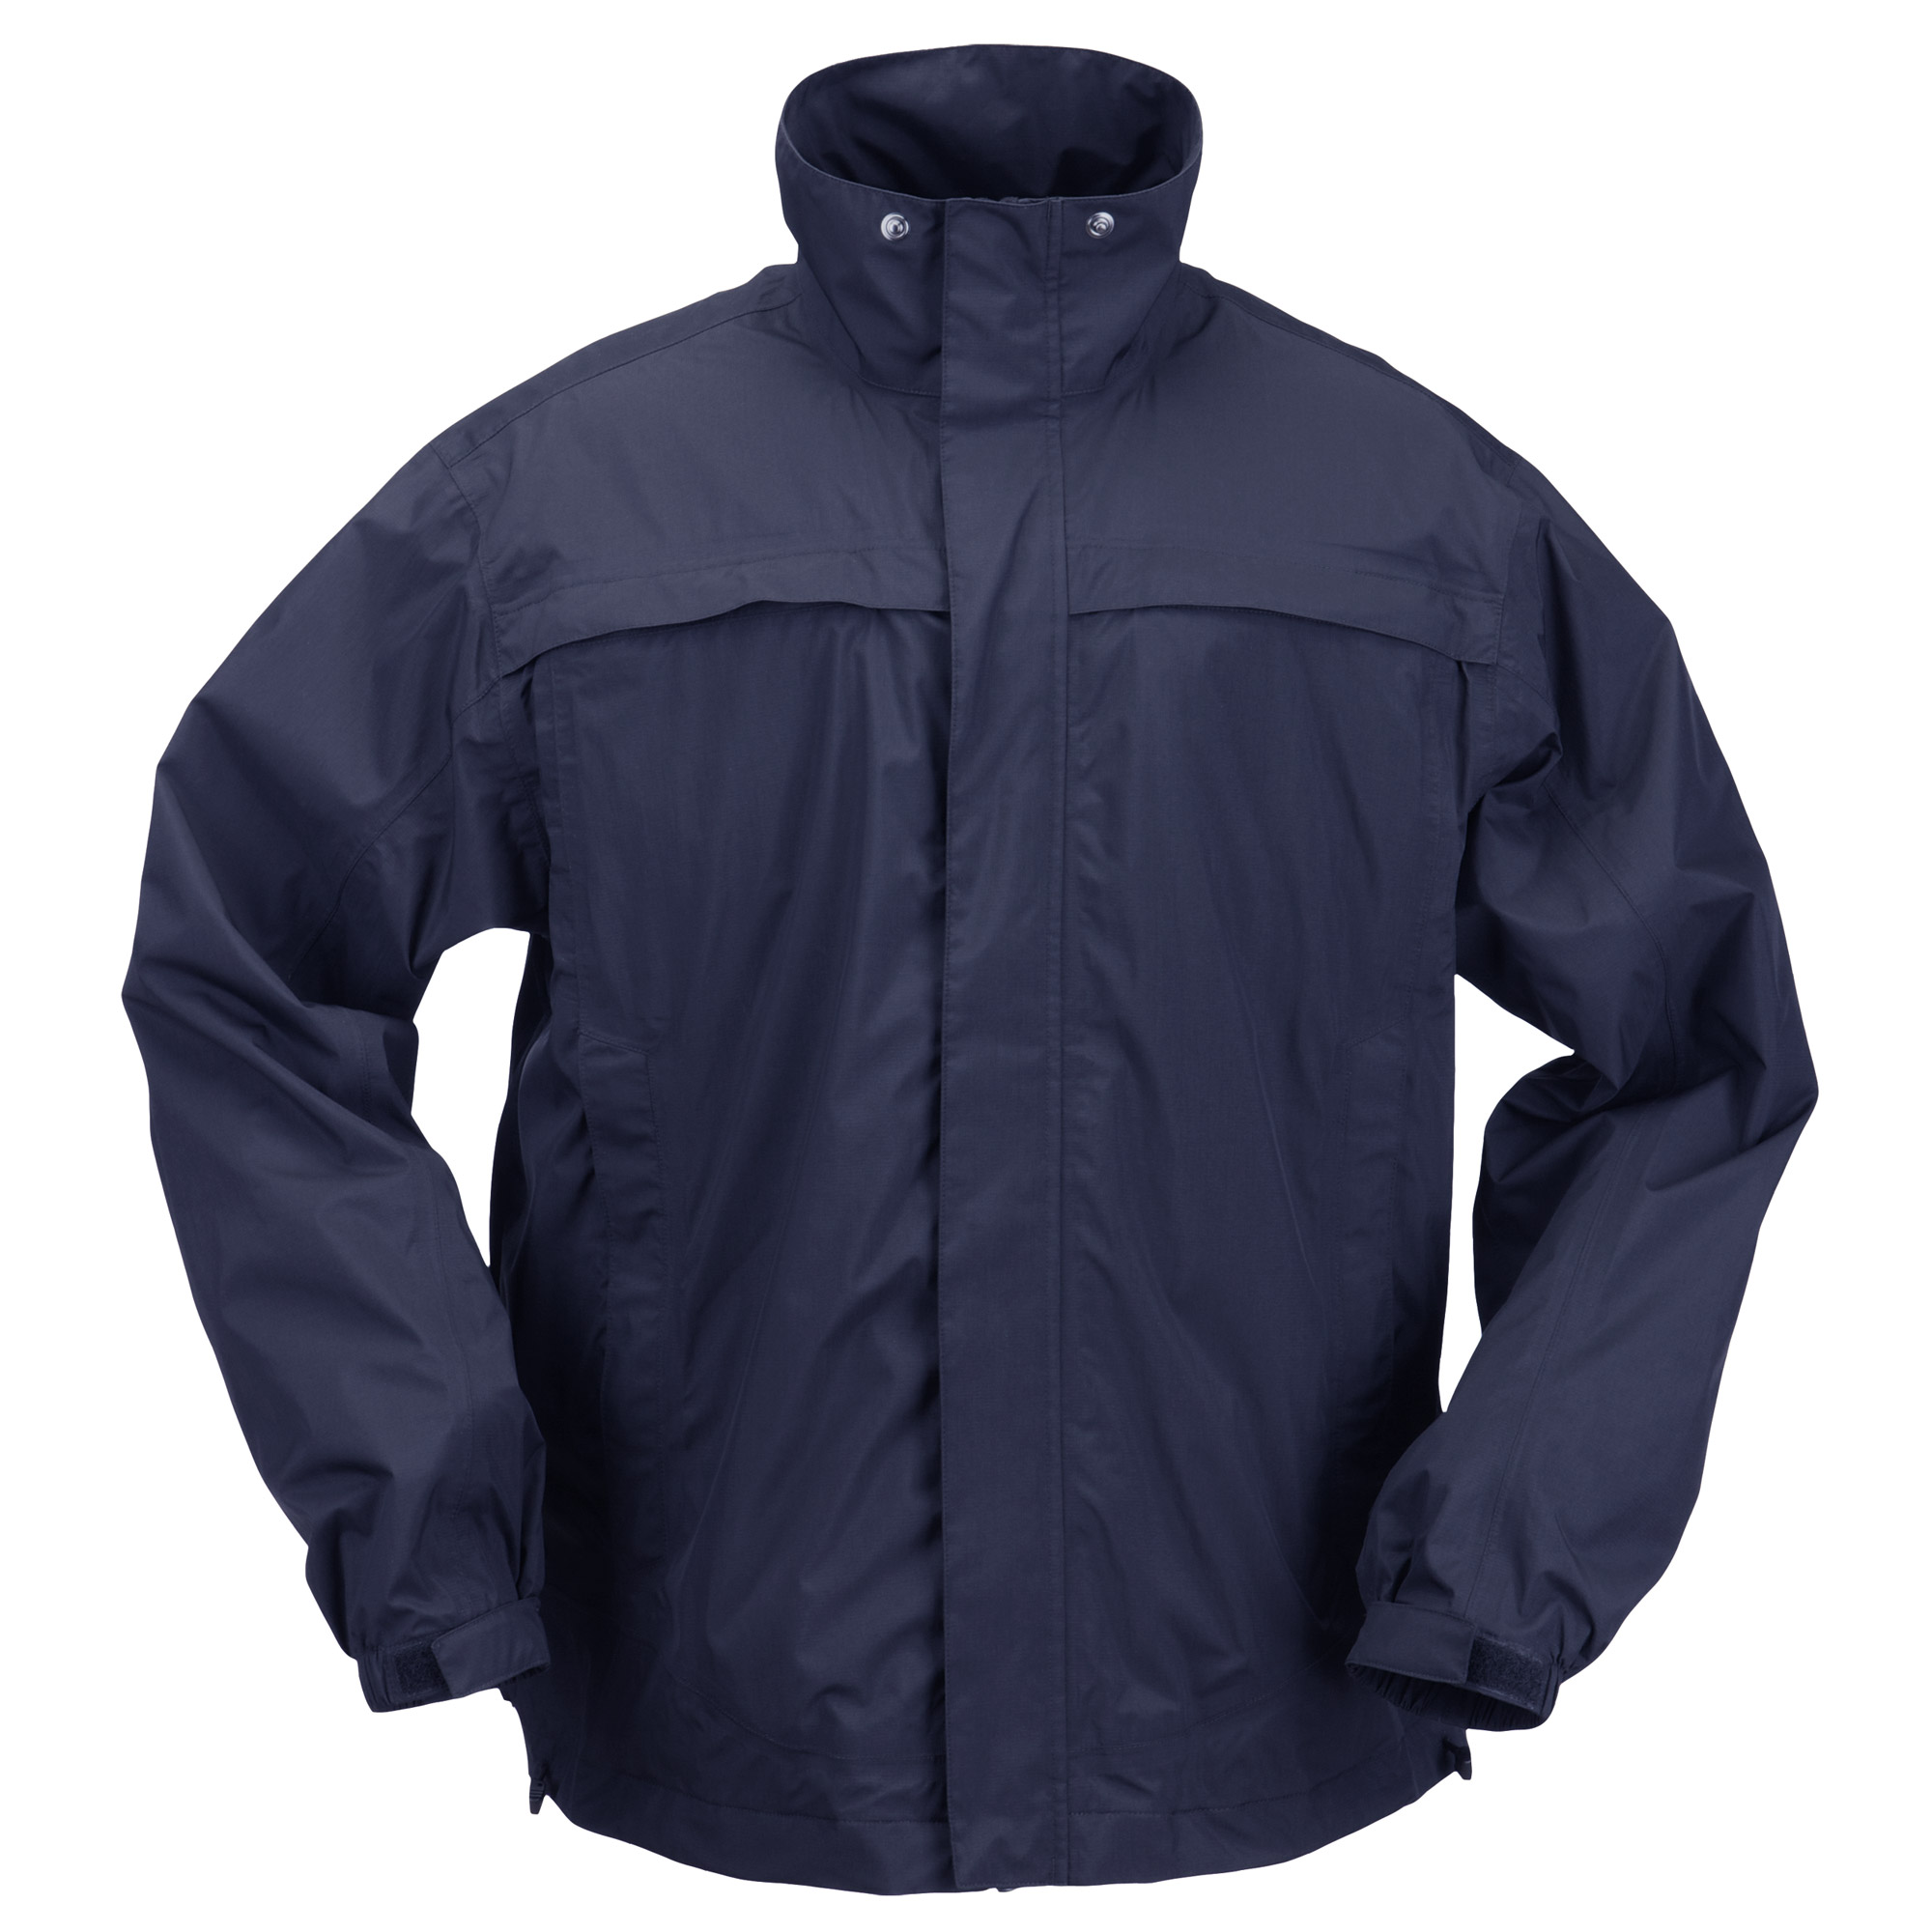 5.11 Tactical Men's TAC DRY Rain Shell (Blue)